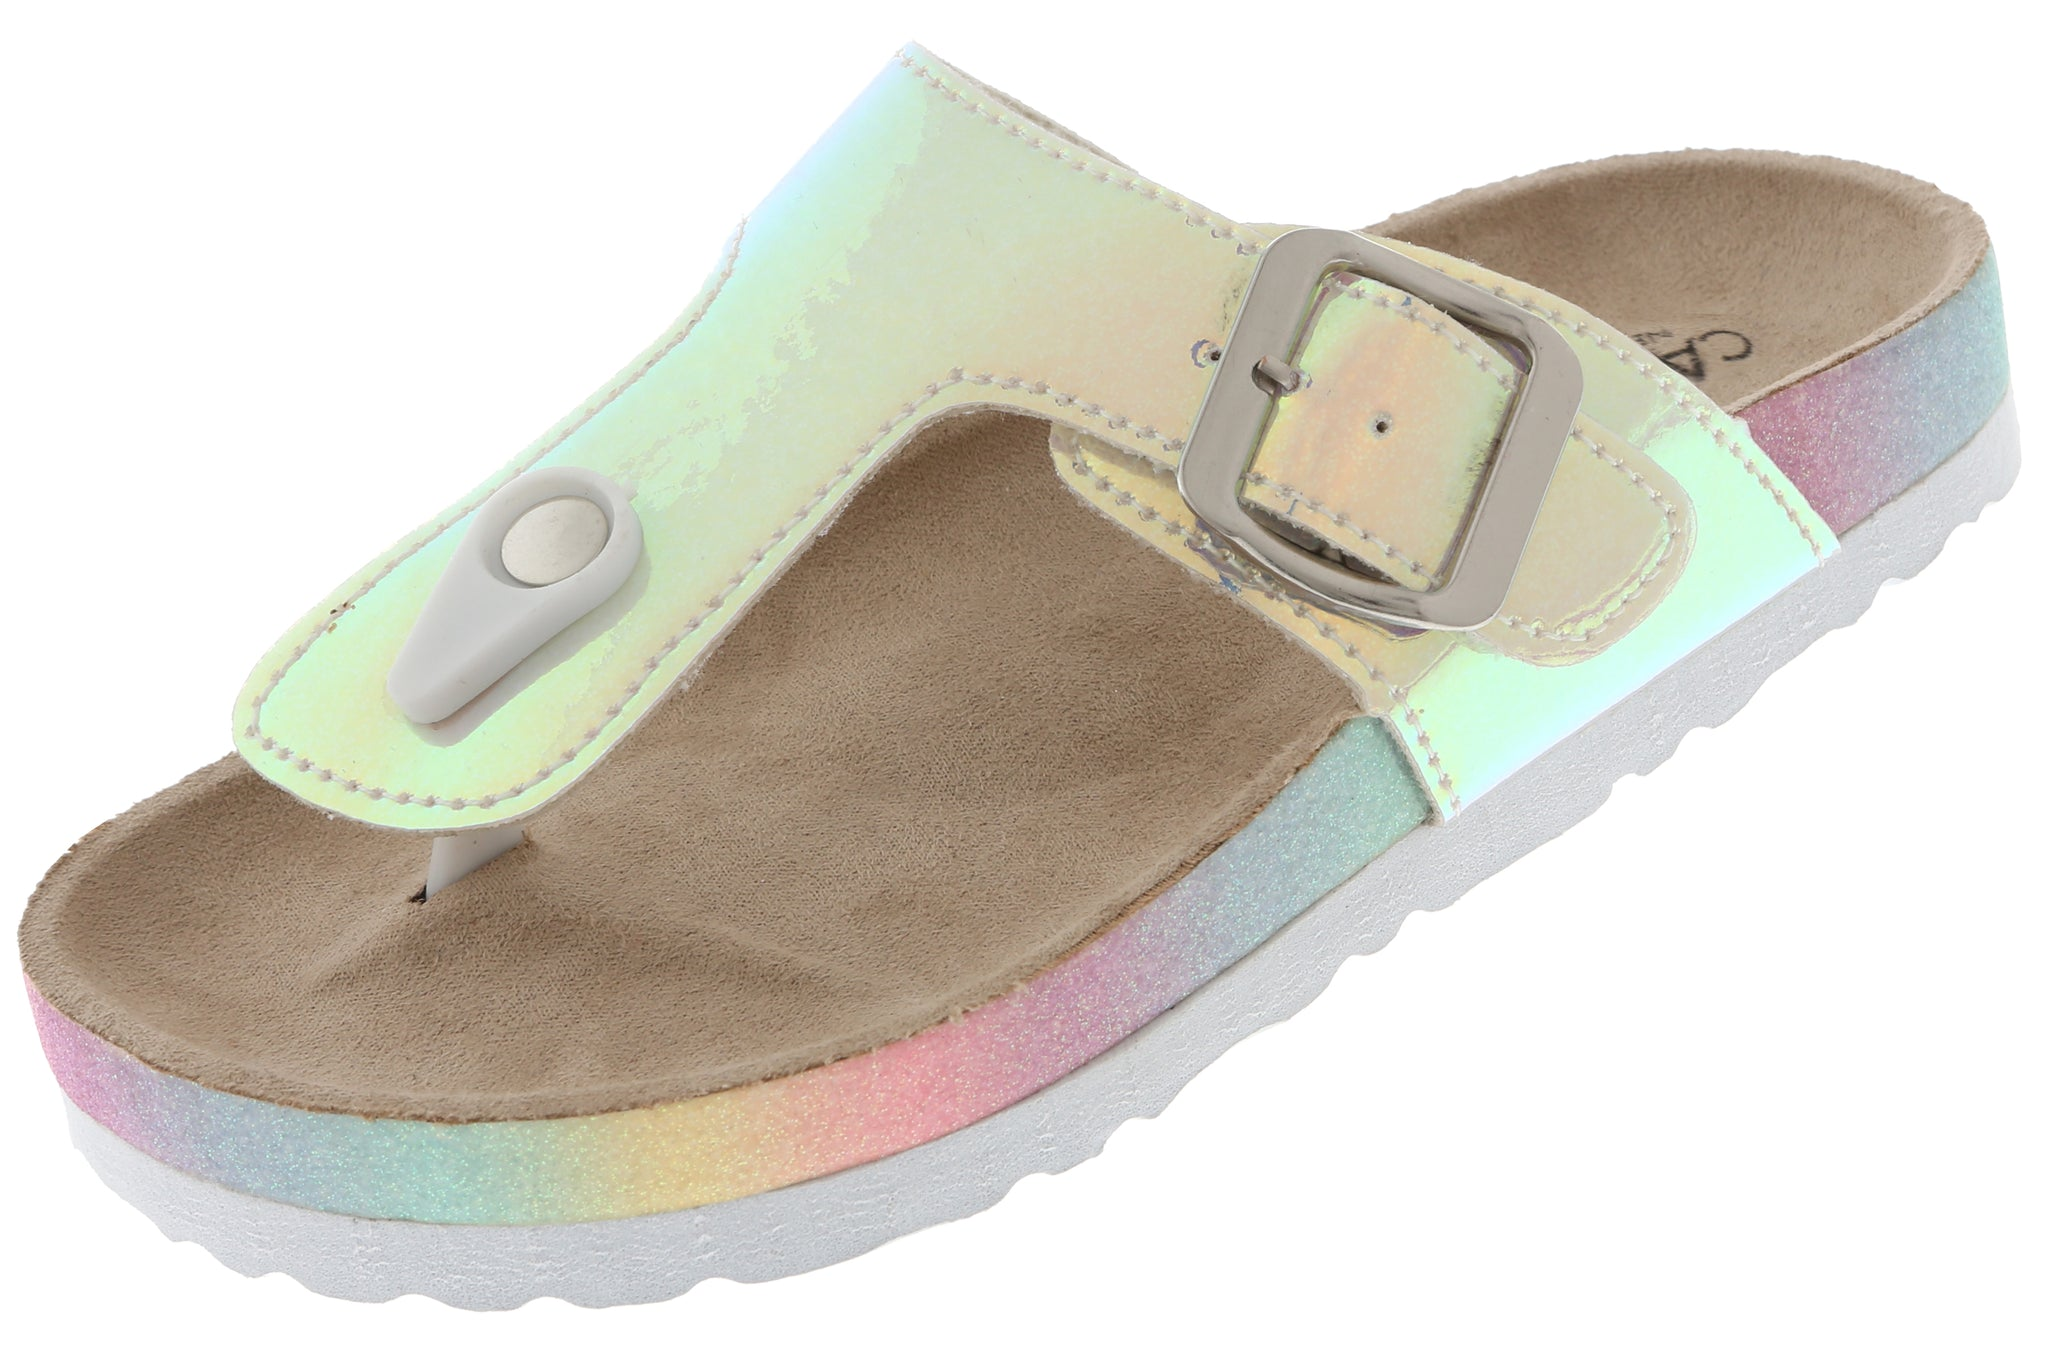 Girls Shiny Metallic Faux-Leather T-Strap Flip Flop